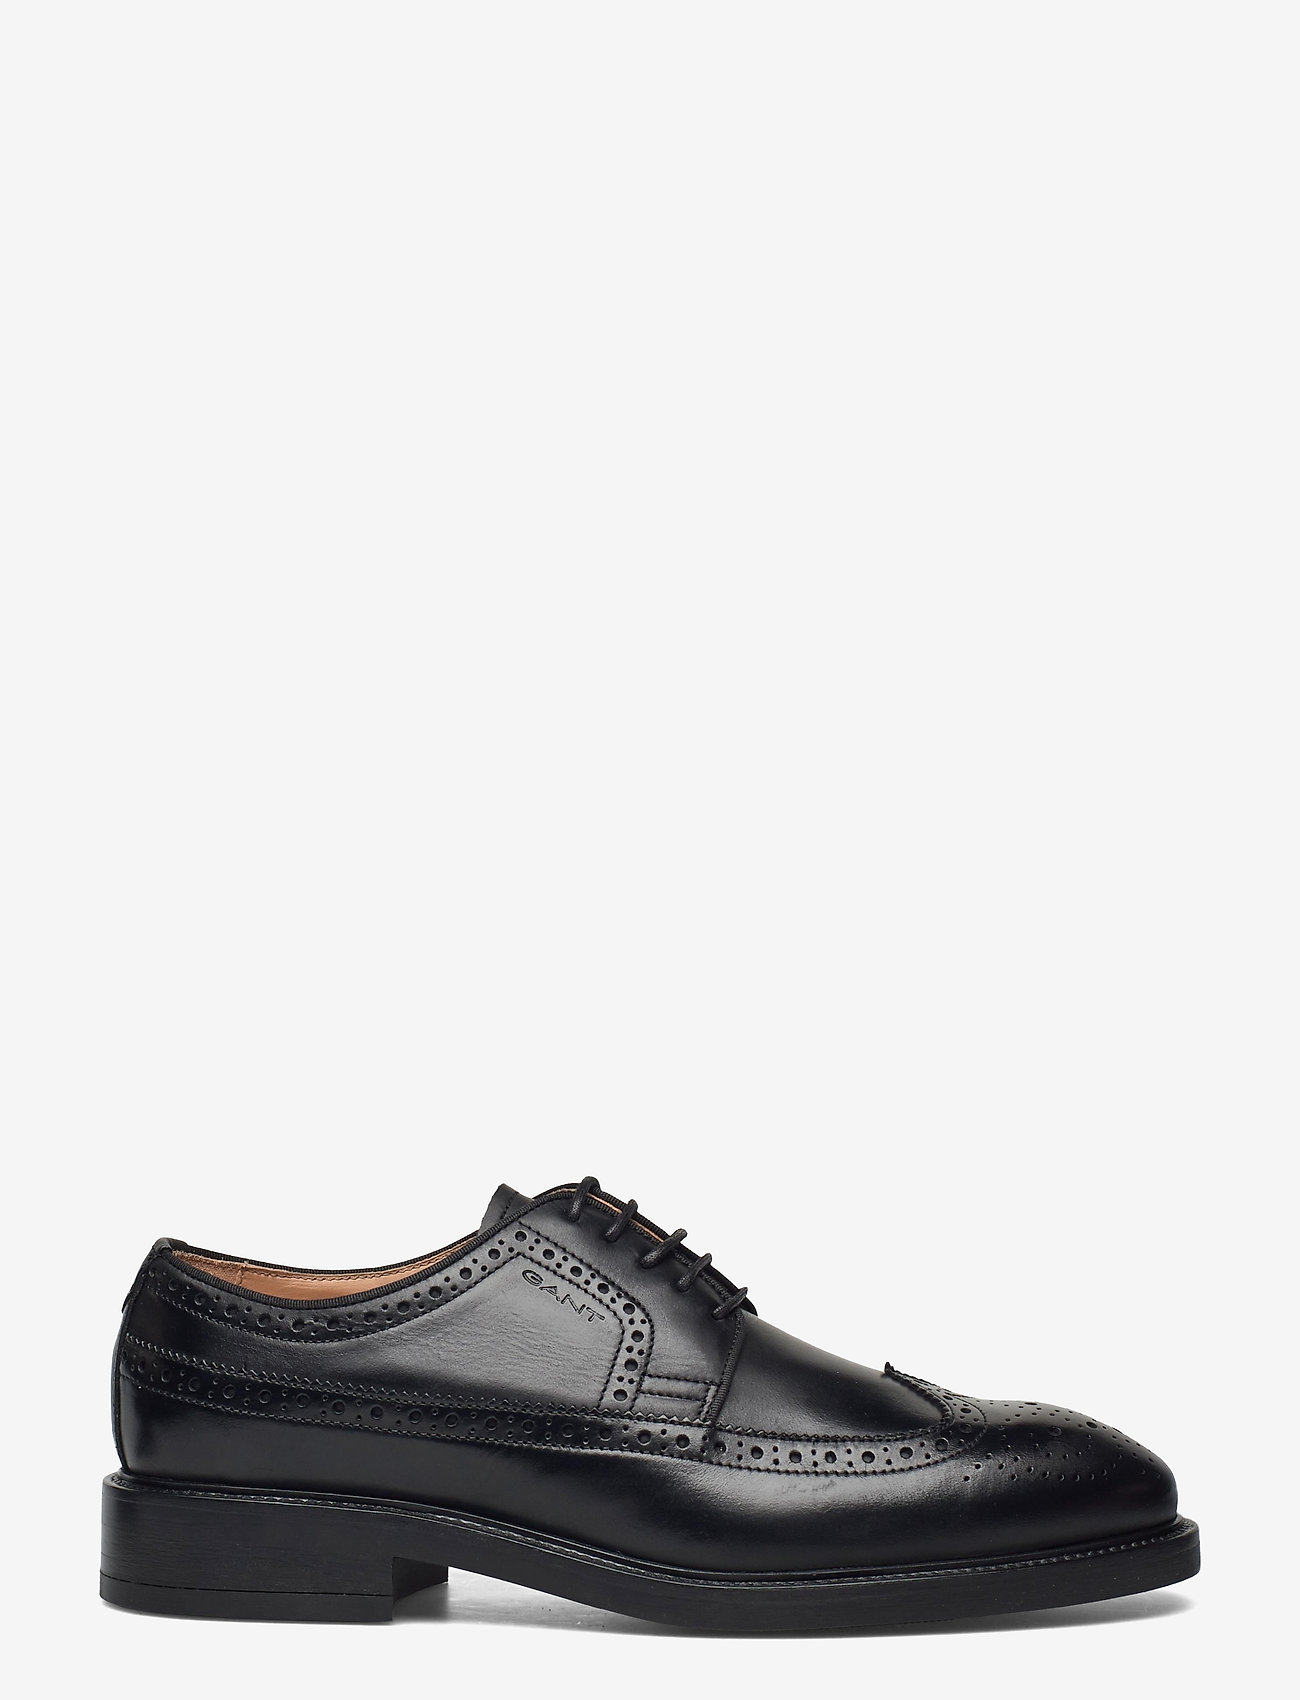 GANT - Flairville Low lace - laced shoes - black - 1